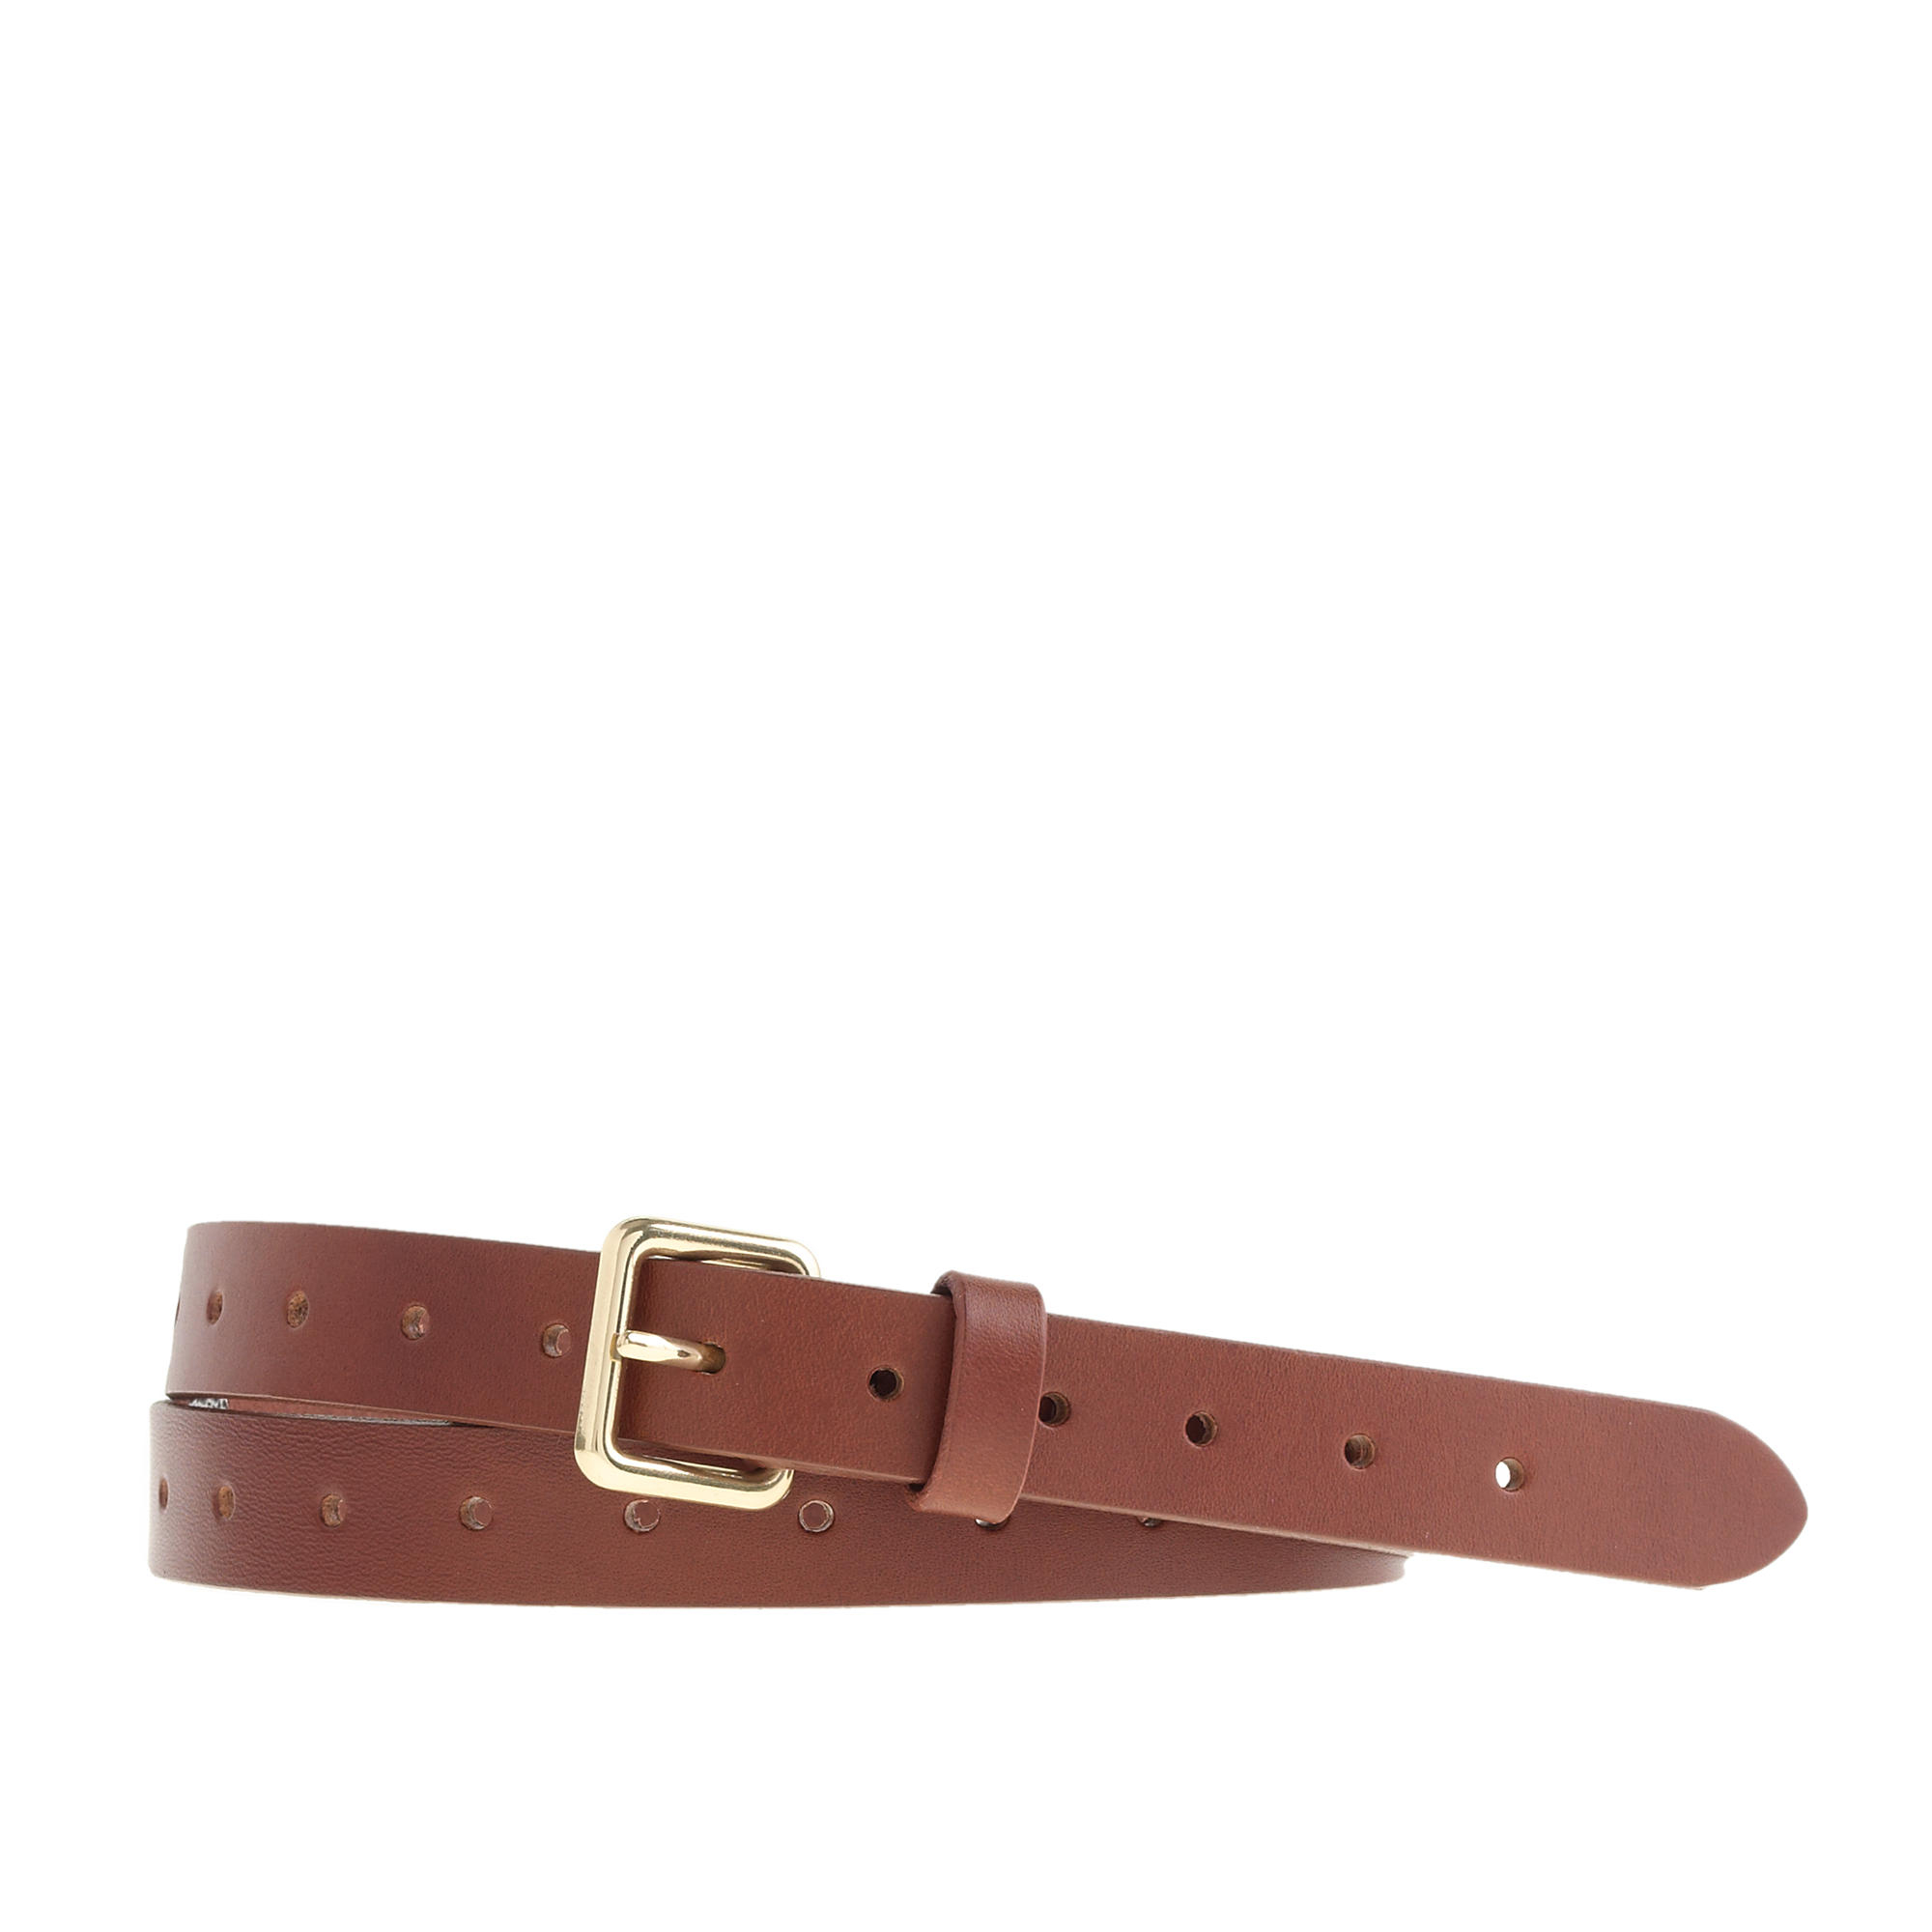 j crew perforated leather belt in brown warm sepia lyst